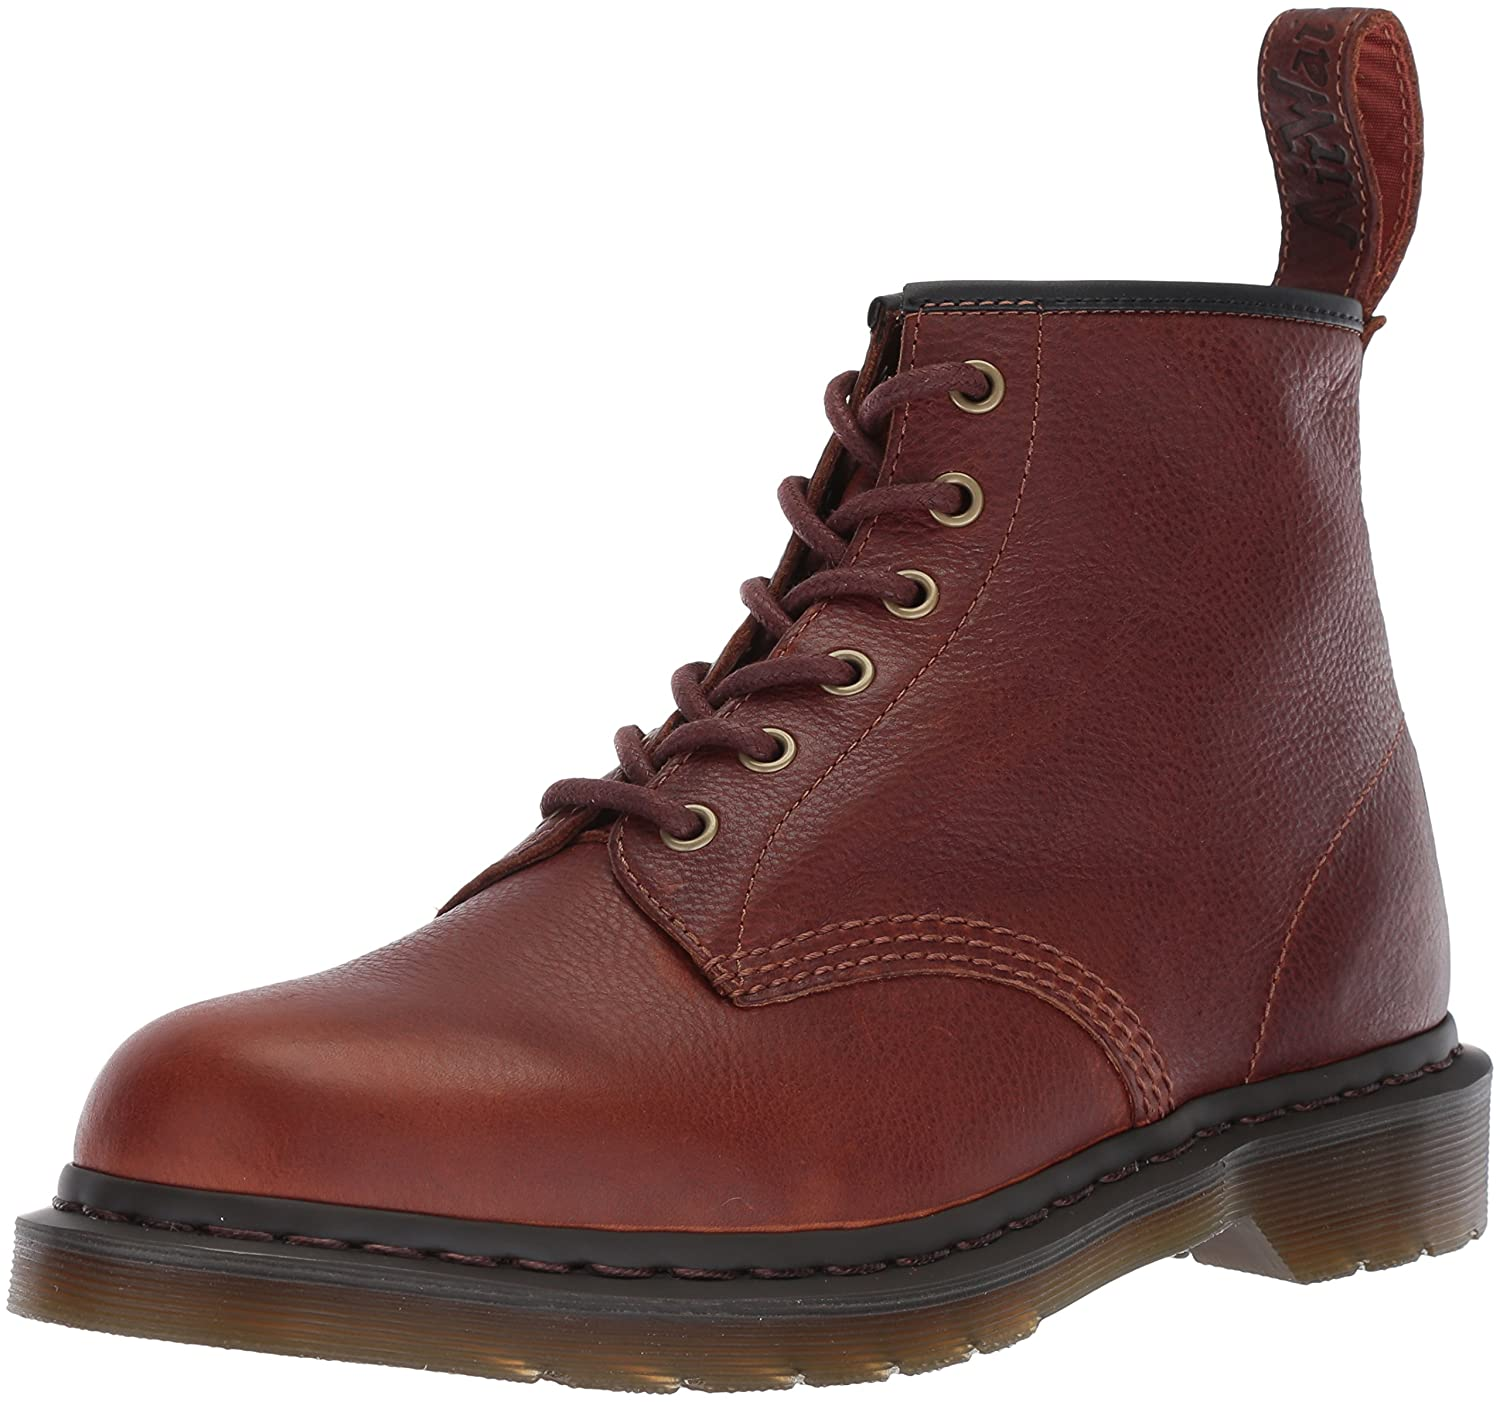 Martens 101 Tan Harvest Leather Fashion Boot Dr